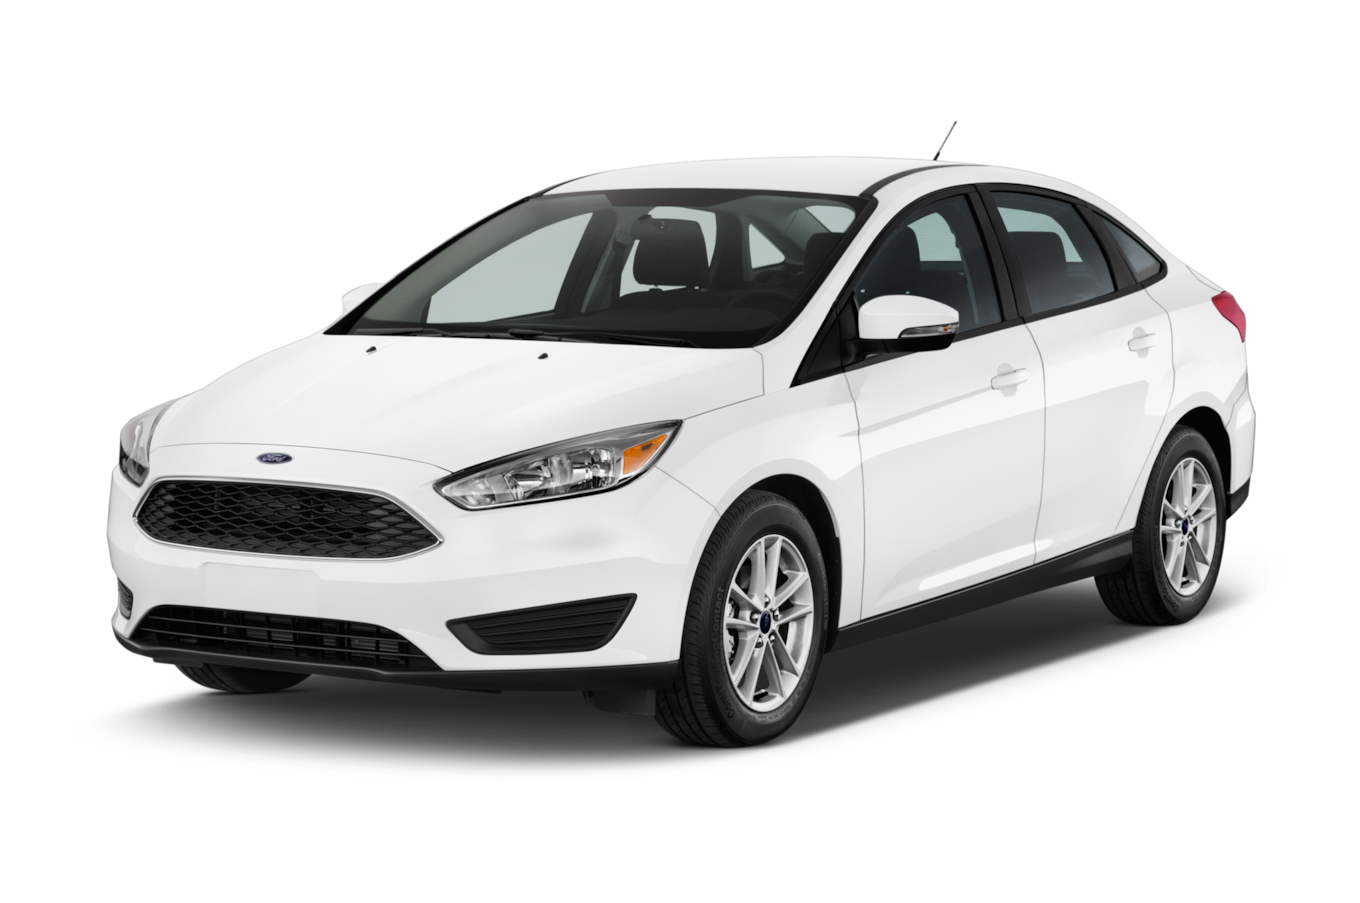 69 Great 2020 Ford Escort 2018 Redesign for 2020 Ford Escort 2018